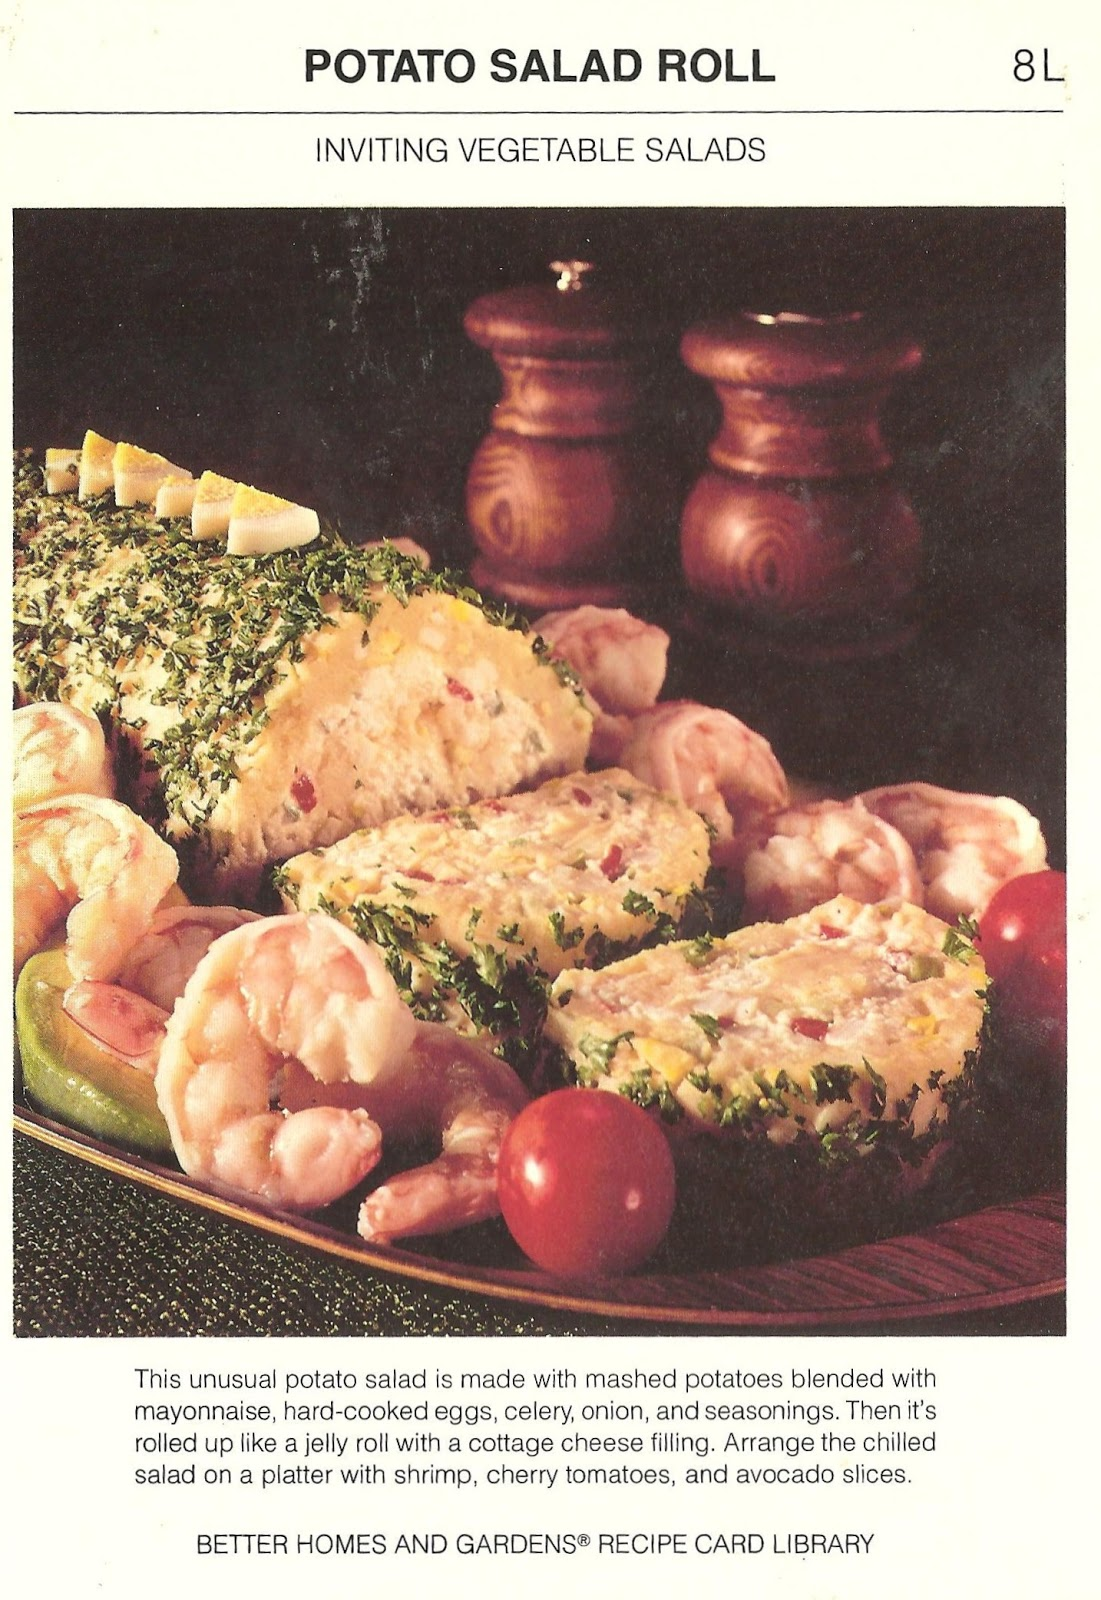 Bad and ugly of retro food new collection and recap recipe cards 19 unusal and made with mashed potatoes mayonaise hard cooked eggs celery onion seasoning rolled like a jelly roll with a cottage cheese filling forumfinder Choice Image